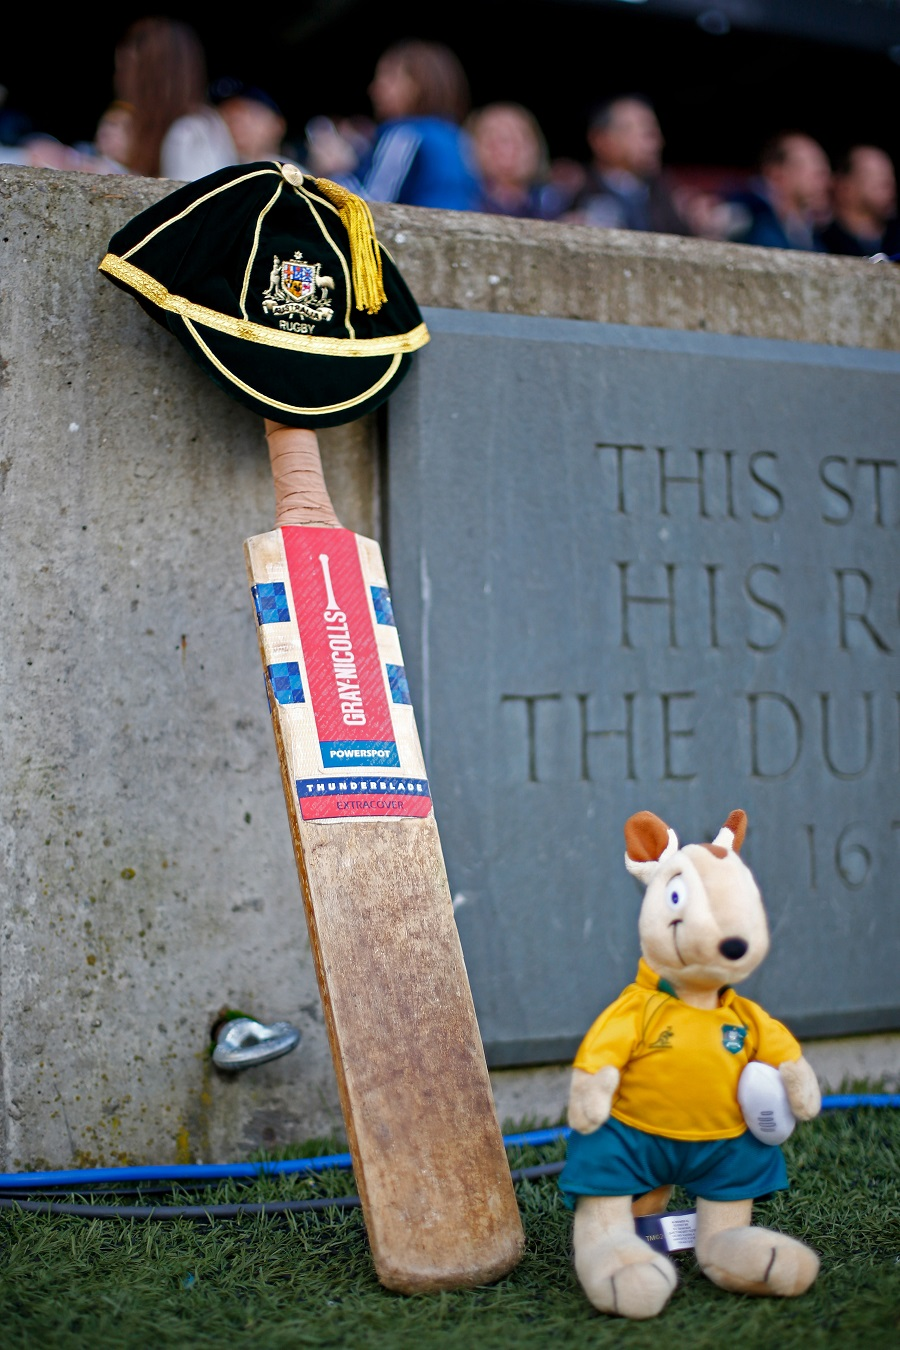 A cricket bat and Australian mascot Wally the Wallaby are placed by the Twickenham pitch in memory of cricketer Phillip Hughes